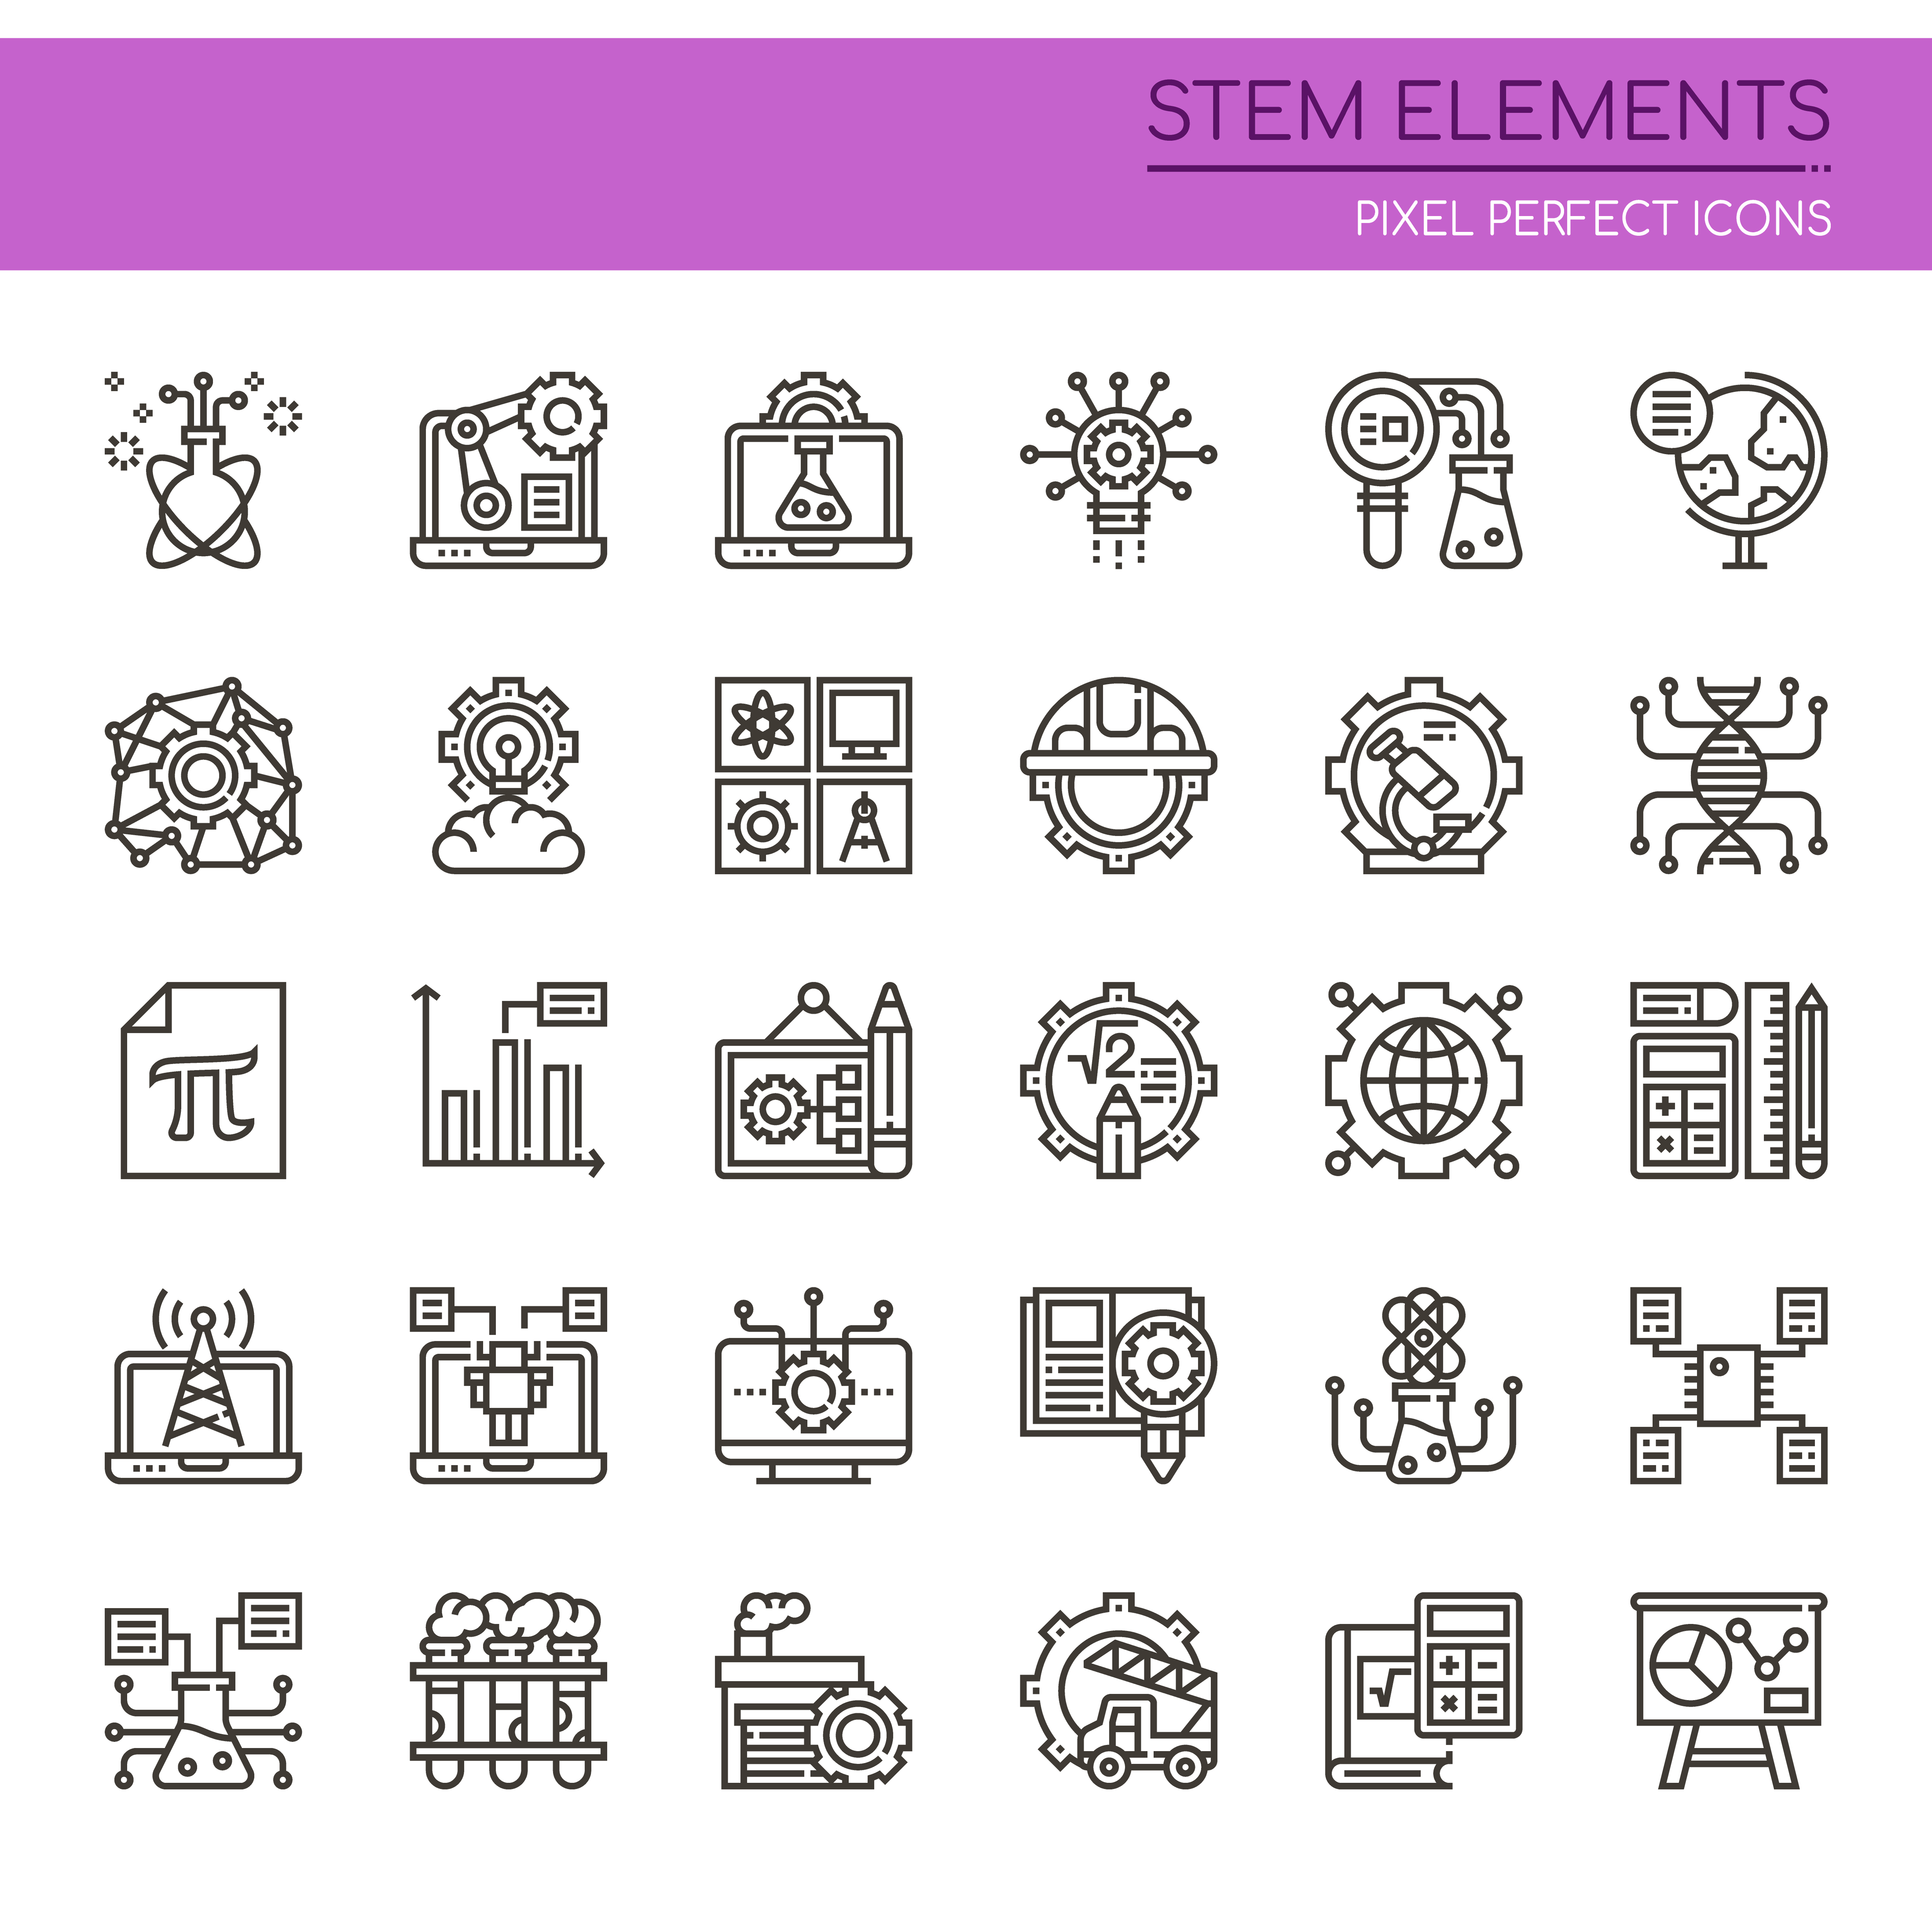 Set Of Black And White Thin Line Stem Elements Download Free Vectors Clipart Graphics Vector Art